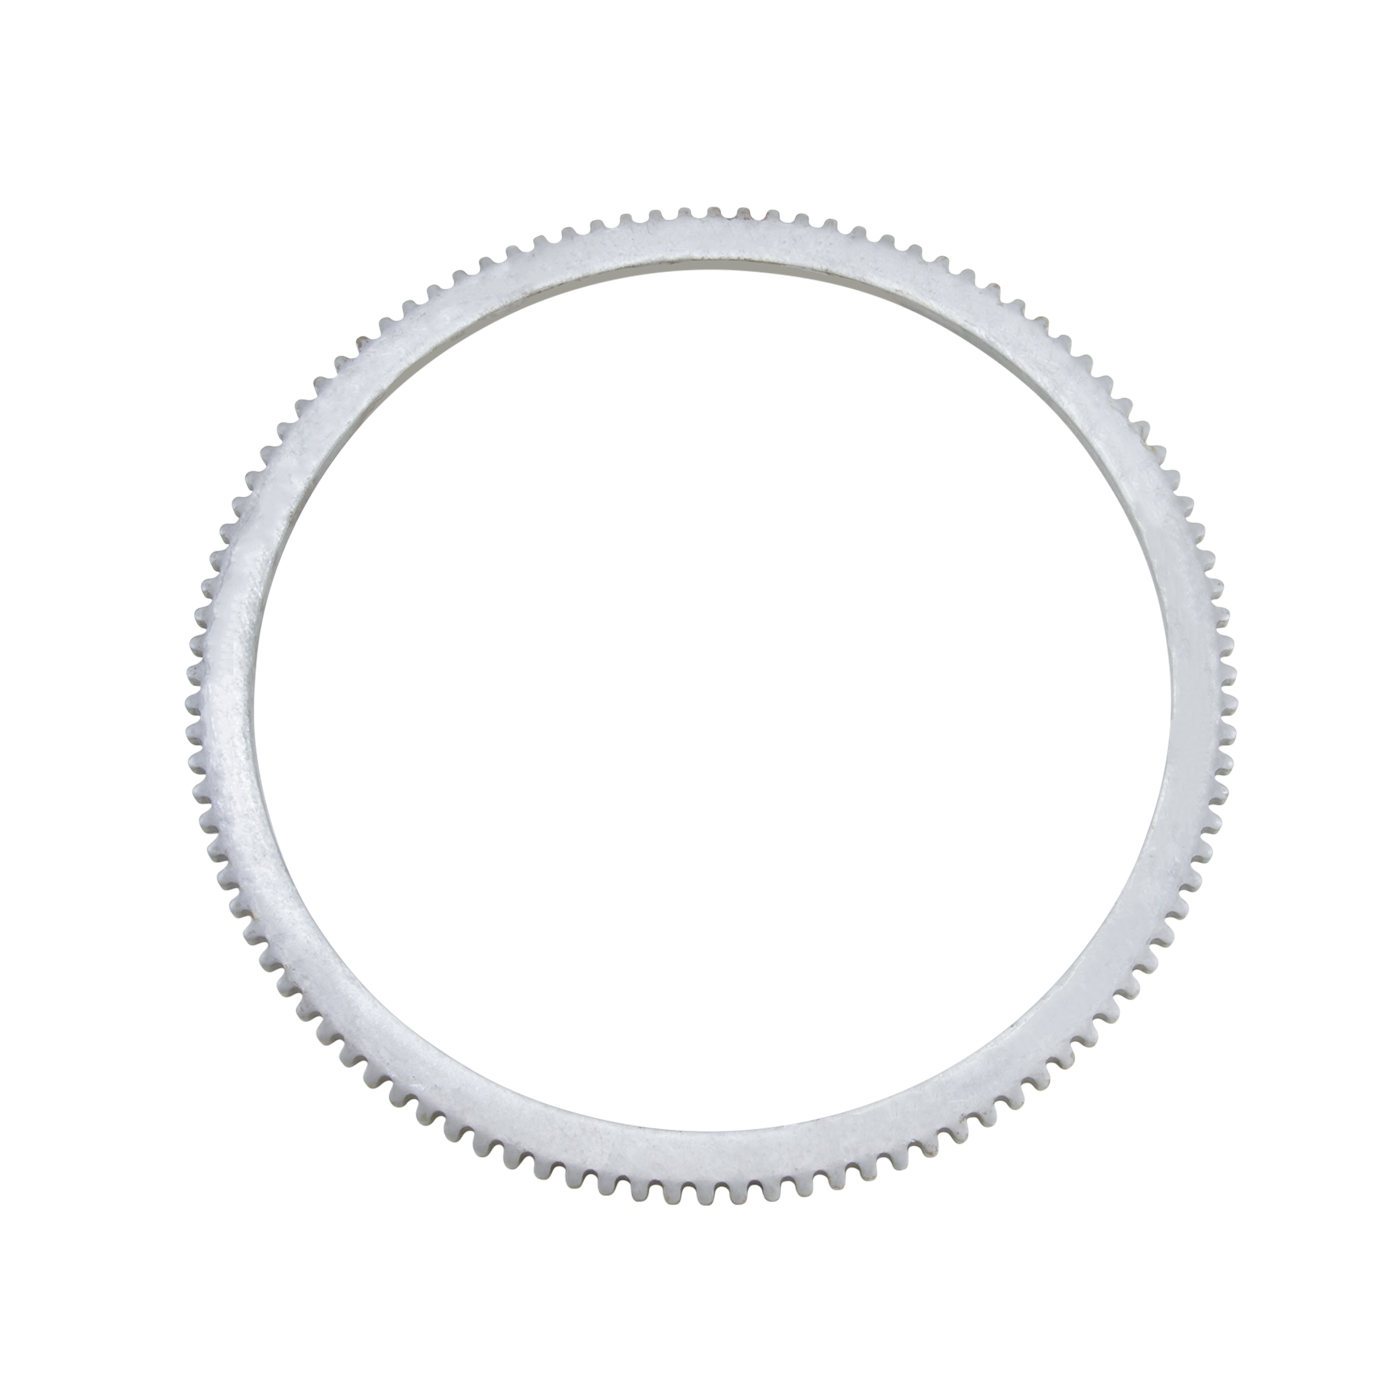 YSPABS-004 - ABS tone ring for 8.25